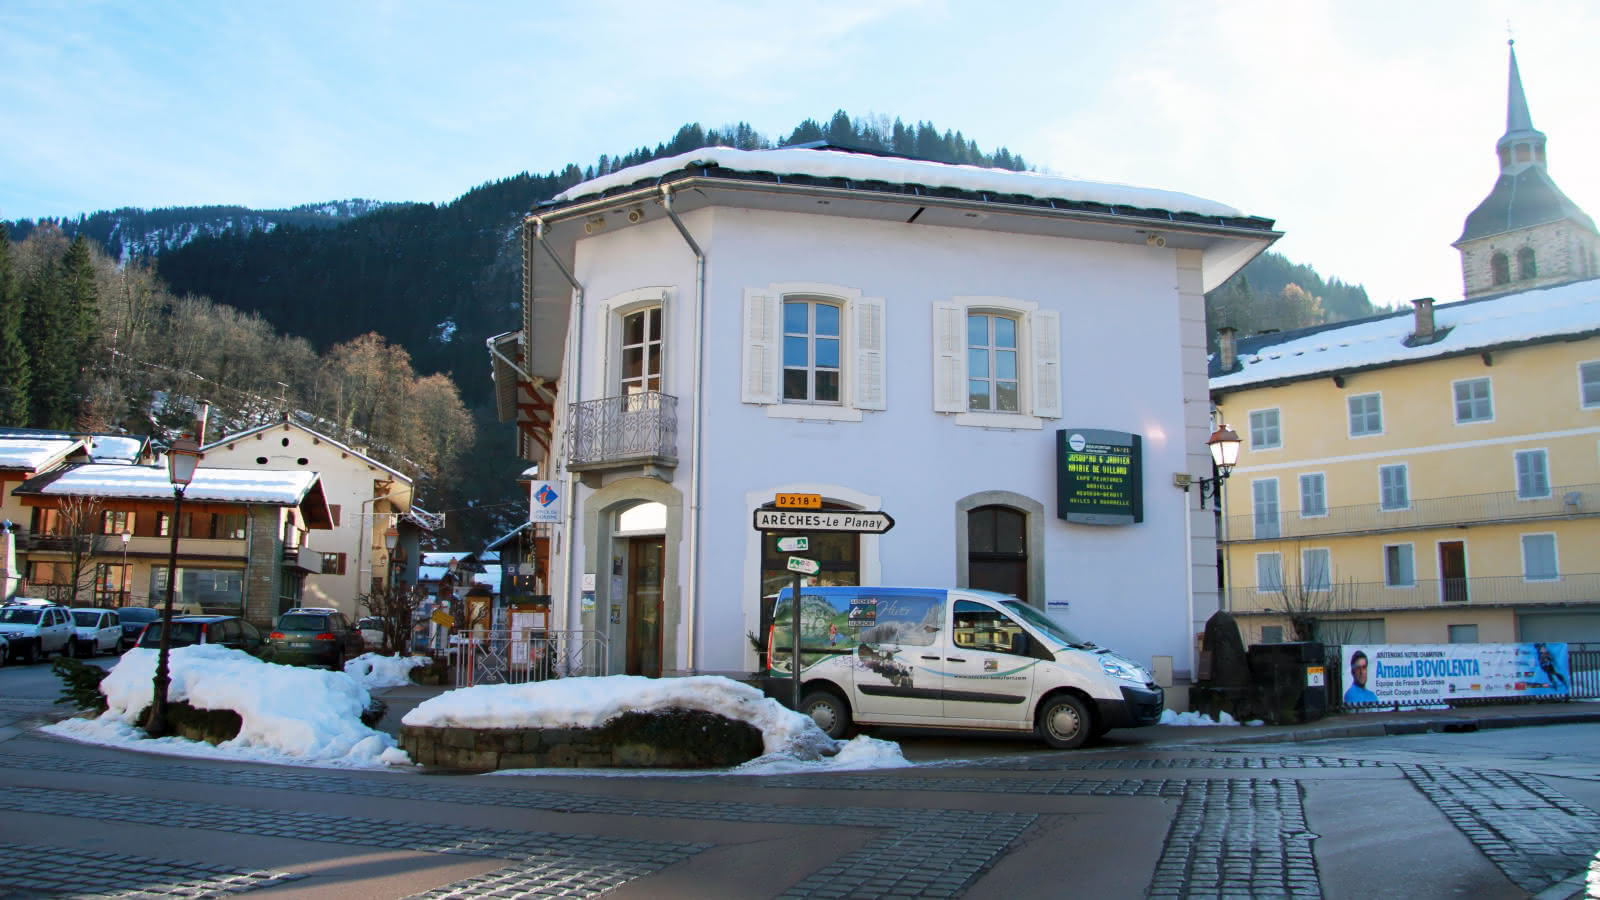 Office de tourisme de Beaufort